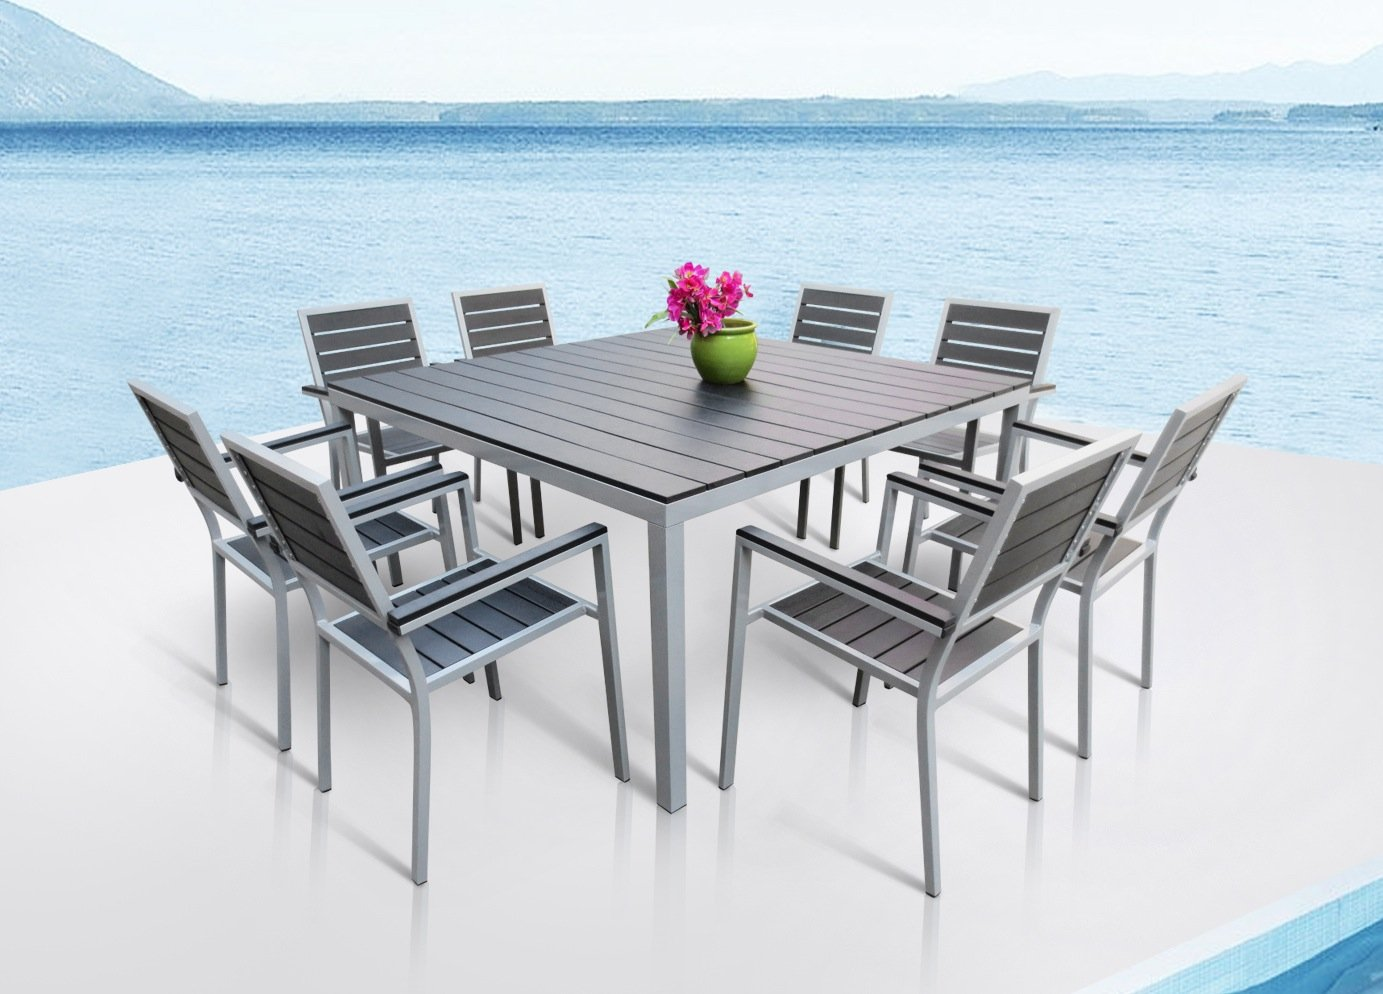 Amazon.com : Outdoor Patio Furniture New Aluminum Resin 9 Piece Square  Dining Table U0026 Chairs Set : Patio, Lawn U0026 Garden